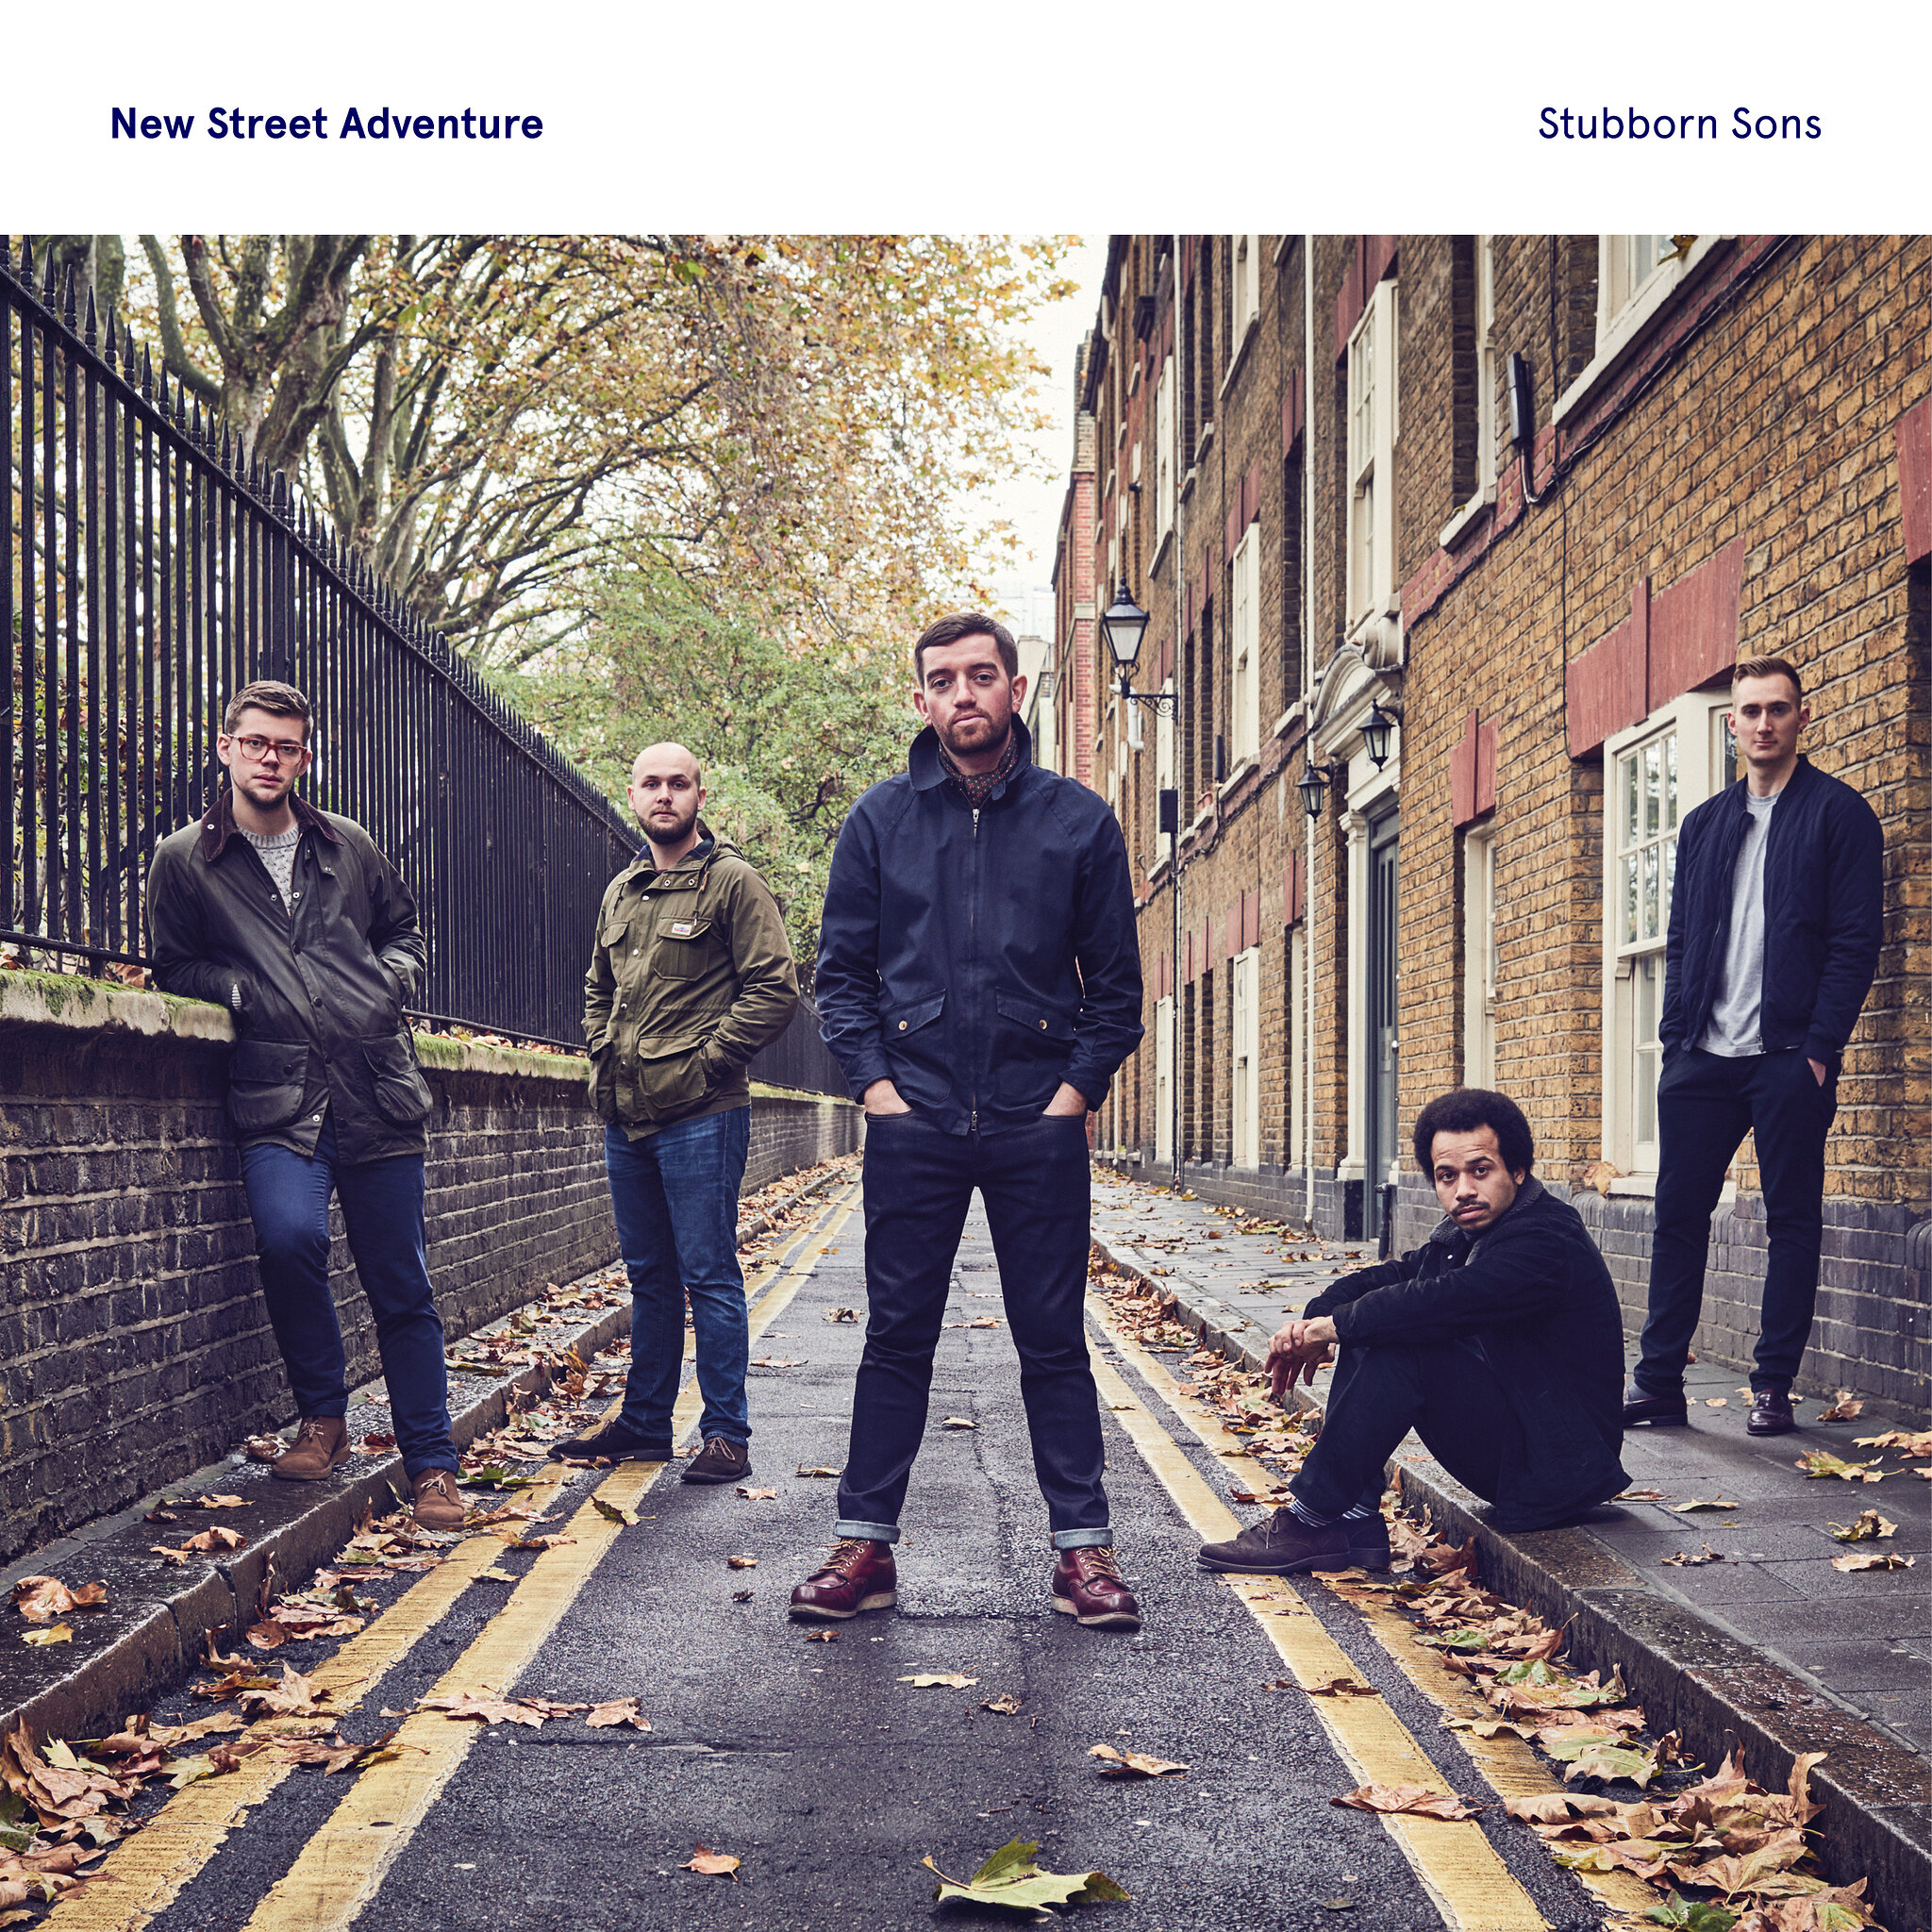 New Street Adventure Stubborn Sons Album Release